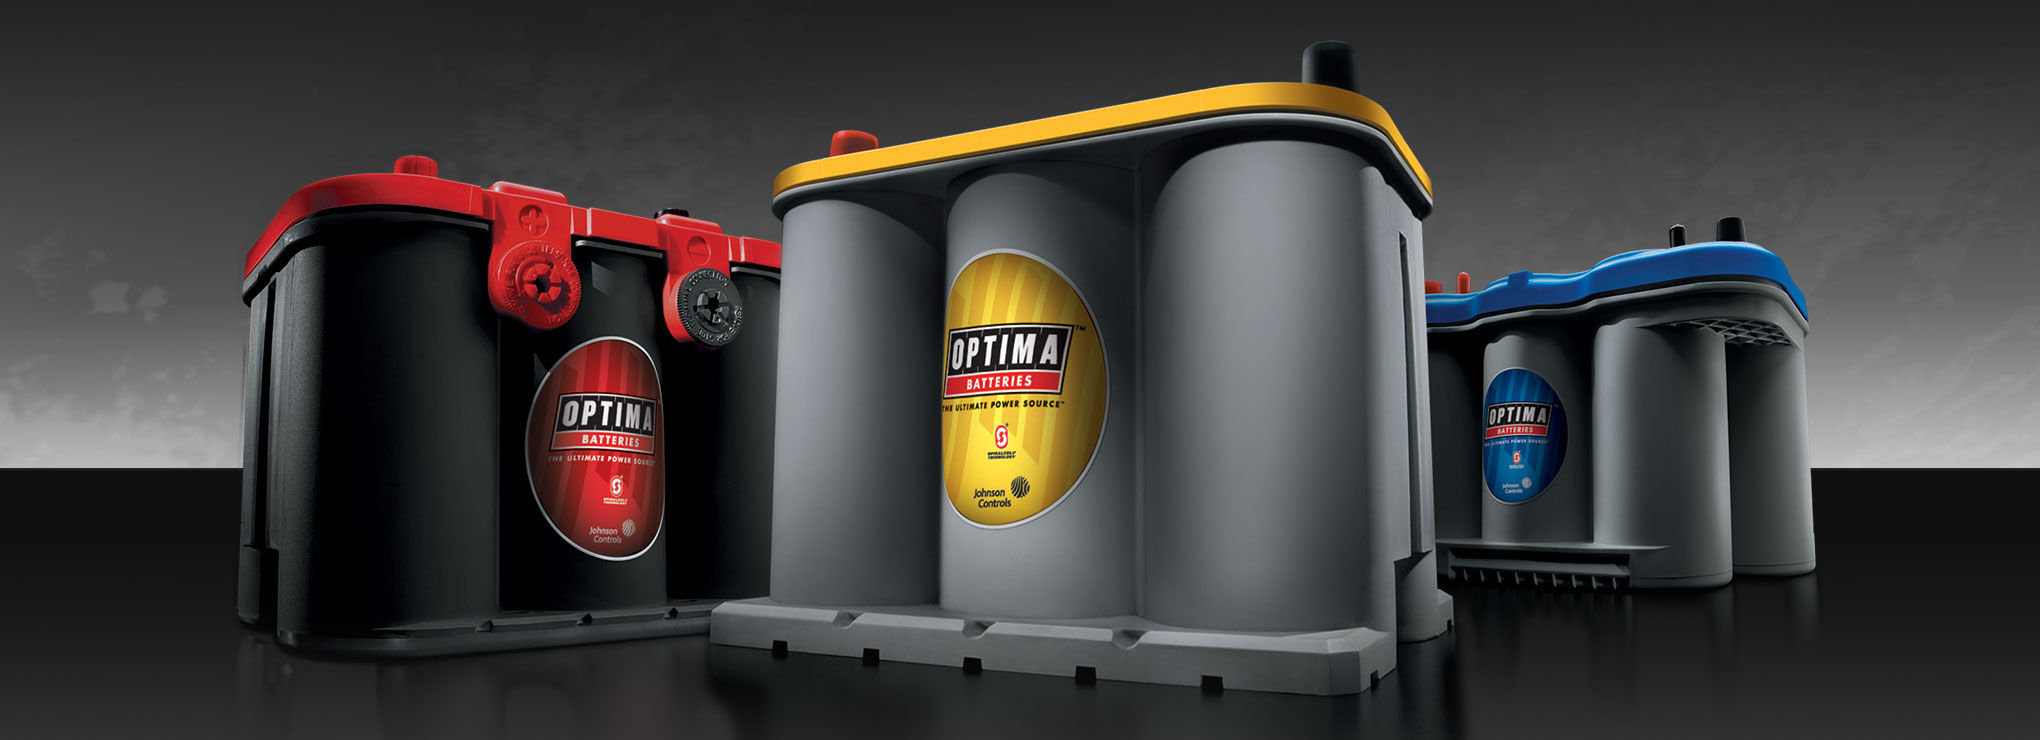 REDTOP, YELLOWTOP, AND BLUETOP CAR AND BOAT BATTERIES - Baterías para autos rojas, amarillas, azules y baterías para barco